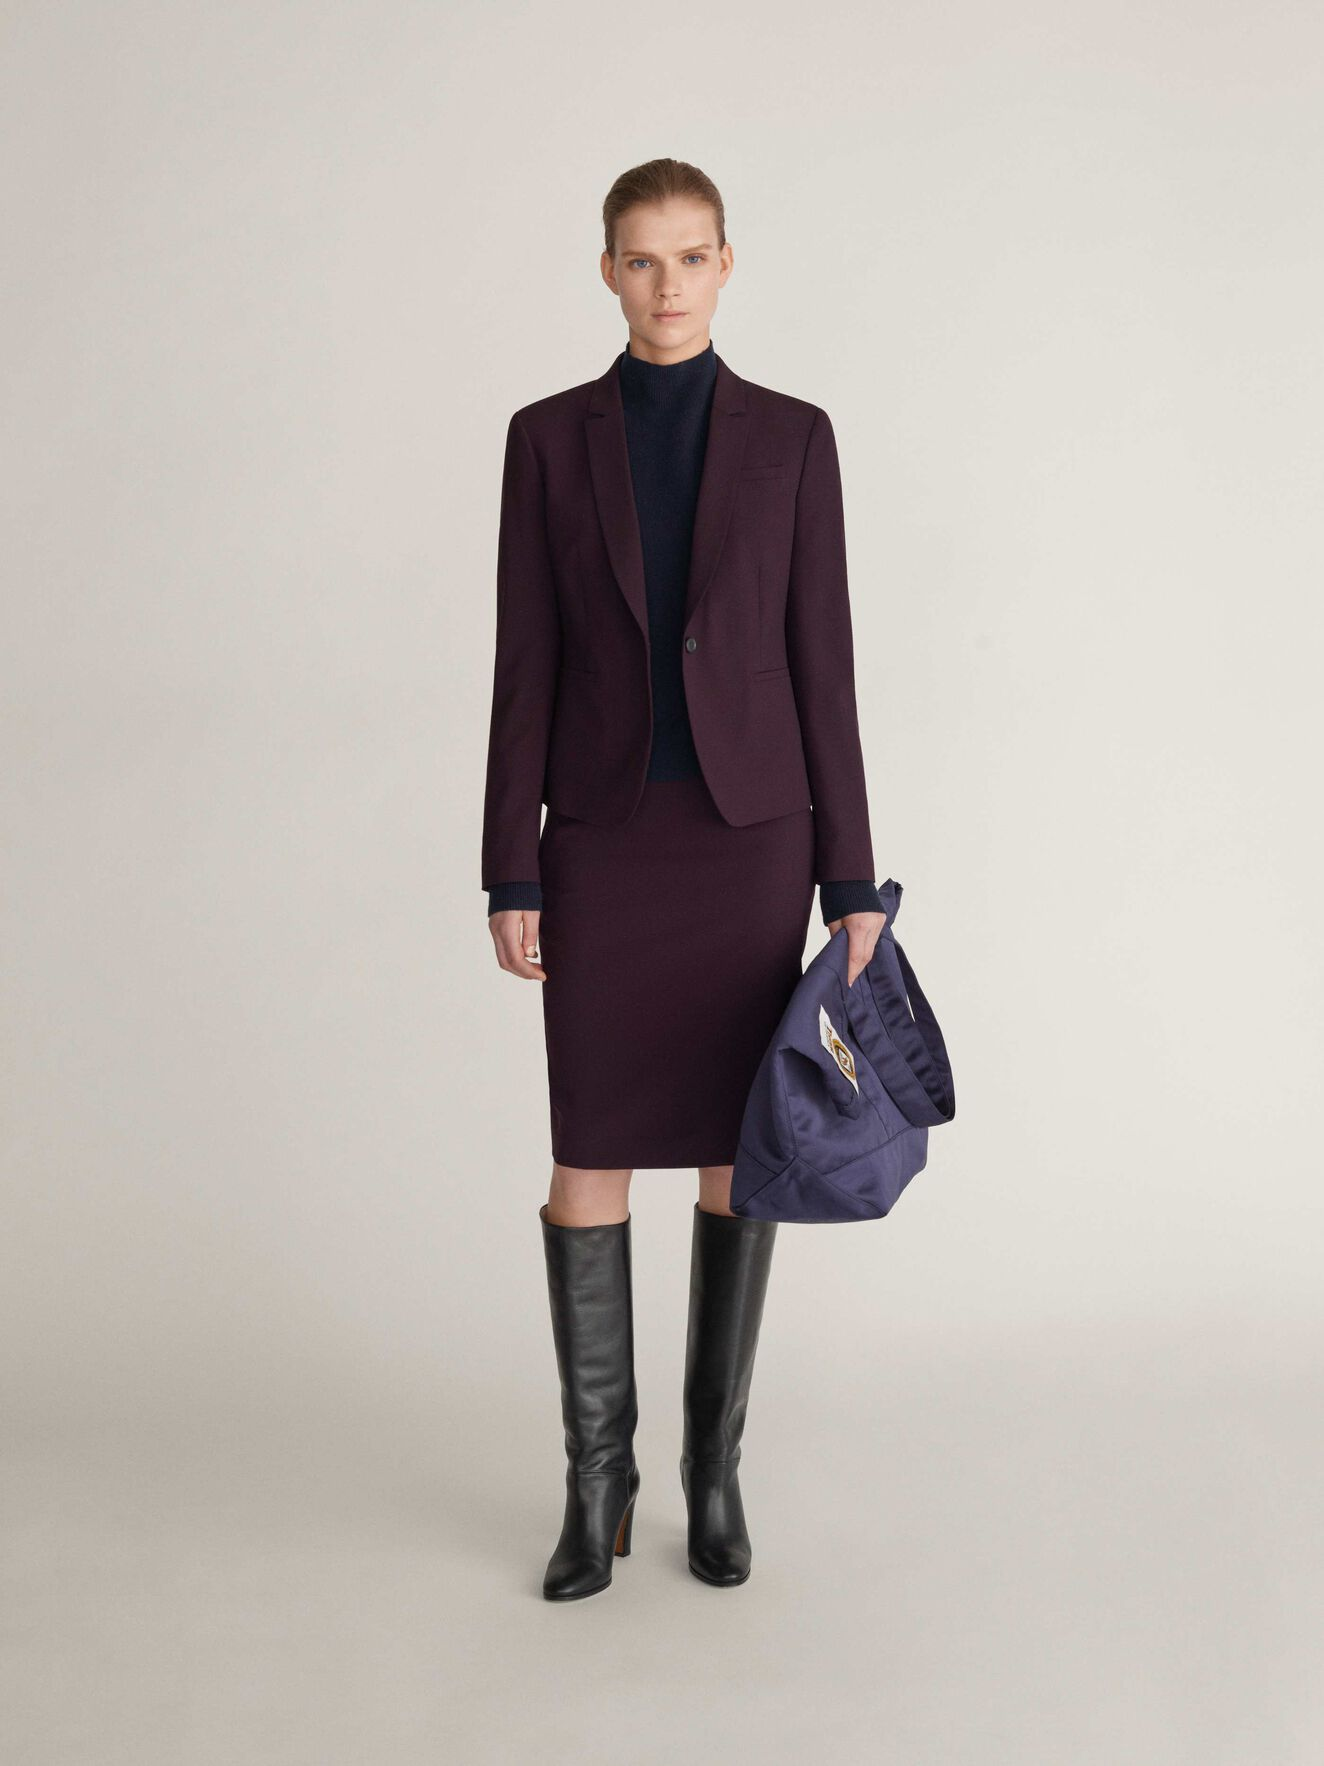 Kana 2 Blazer in Juicy Plum from Tiger of Sweden